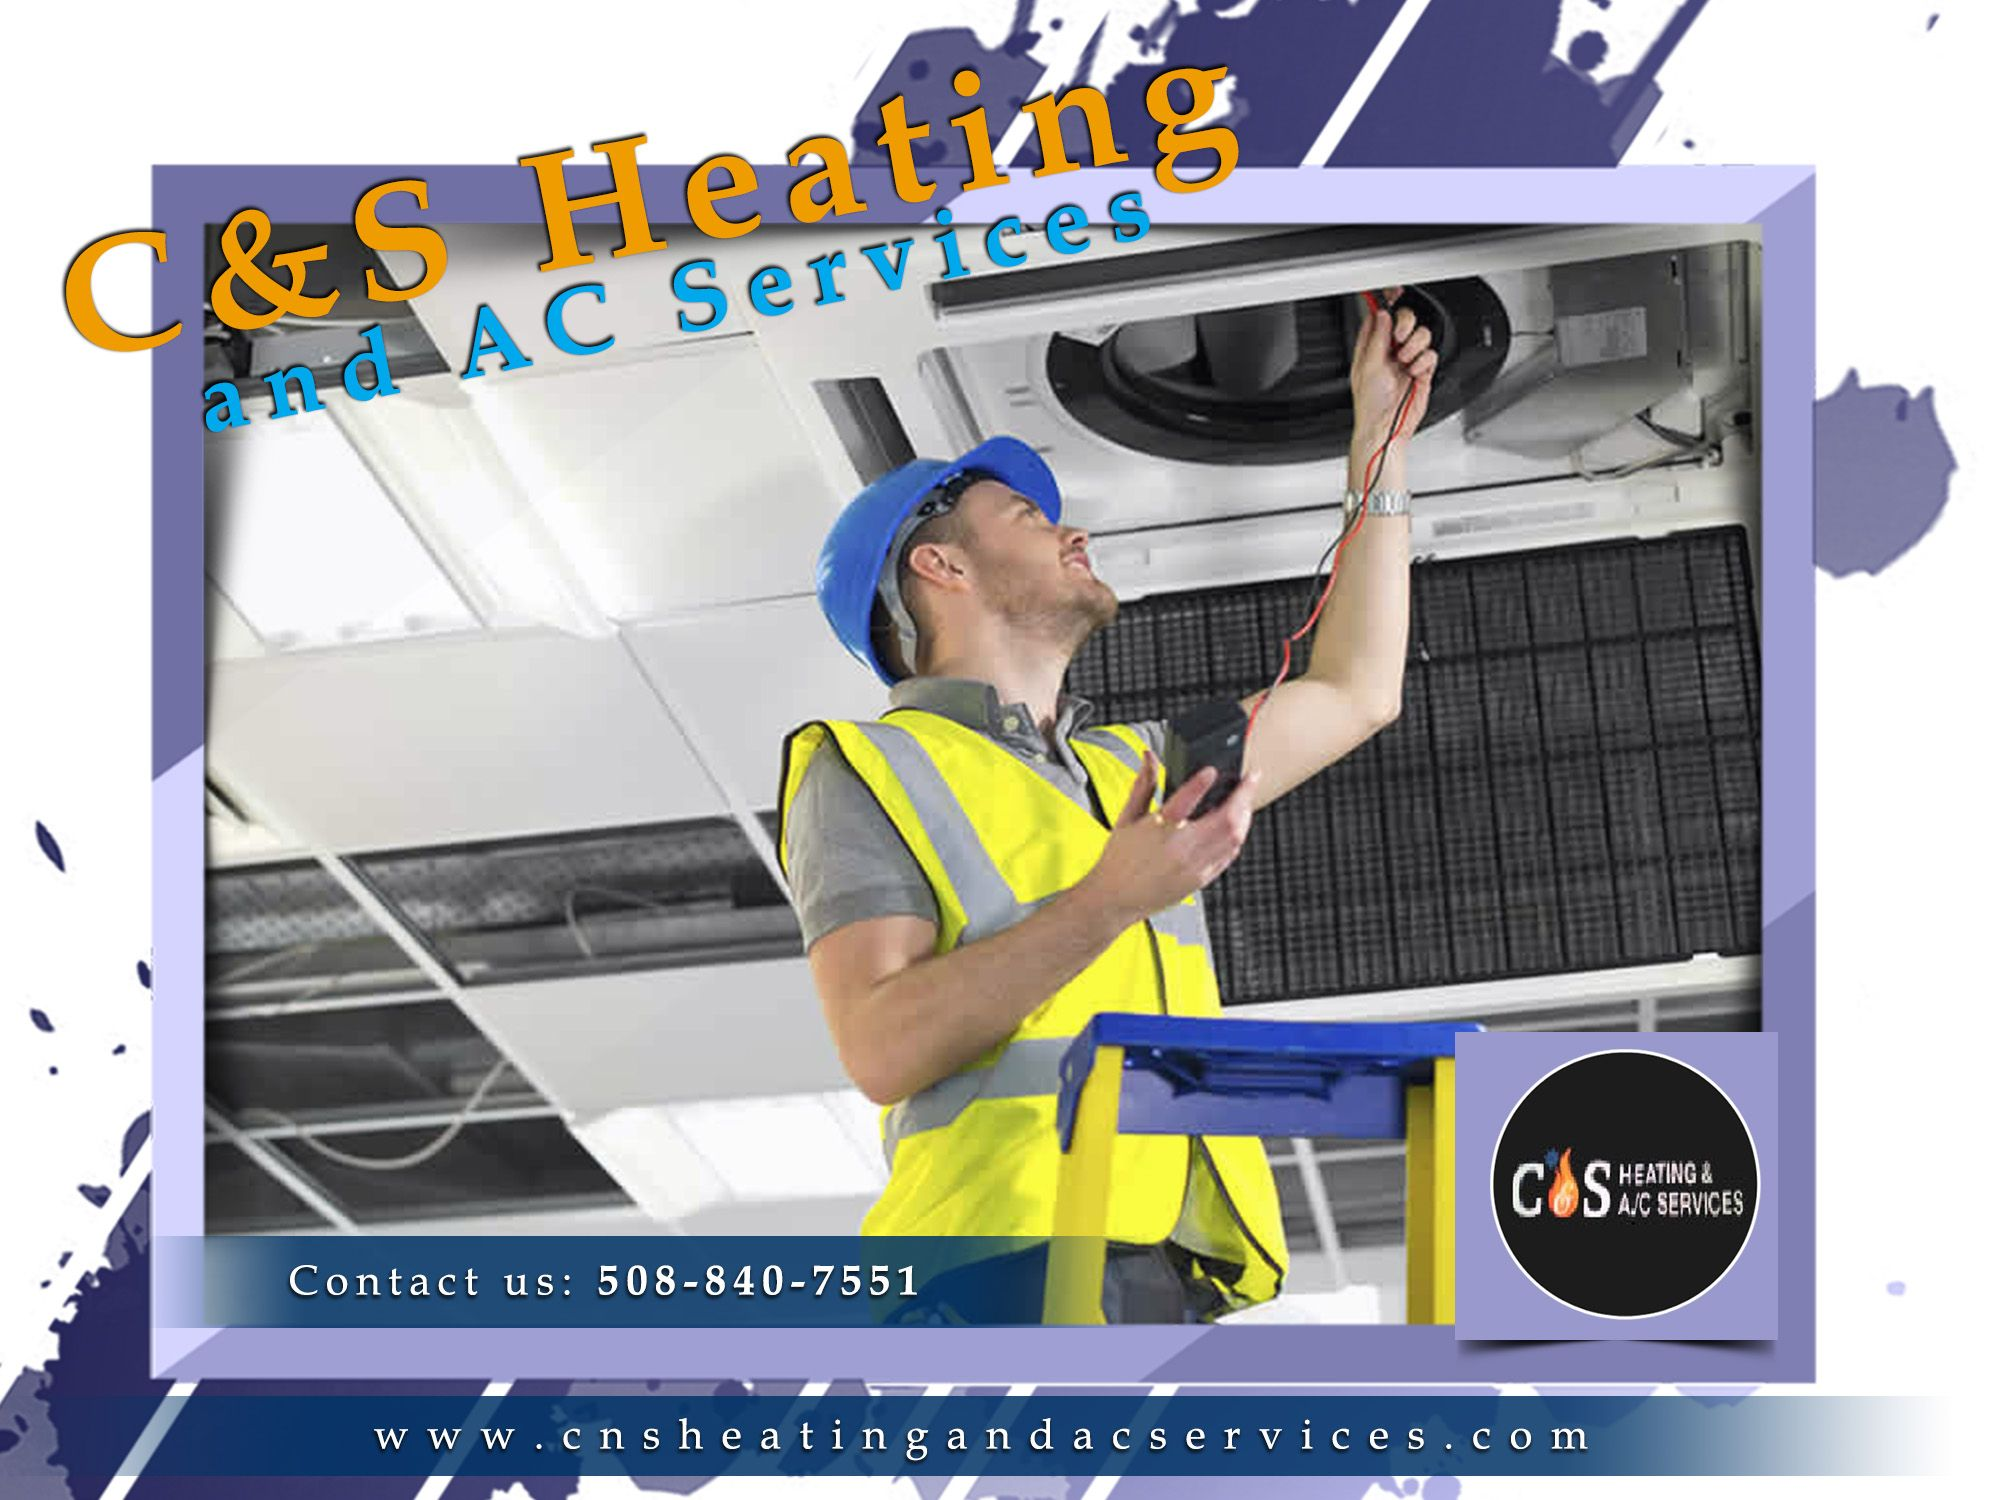 C&S Heating and AC Services specializes in all of your